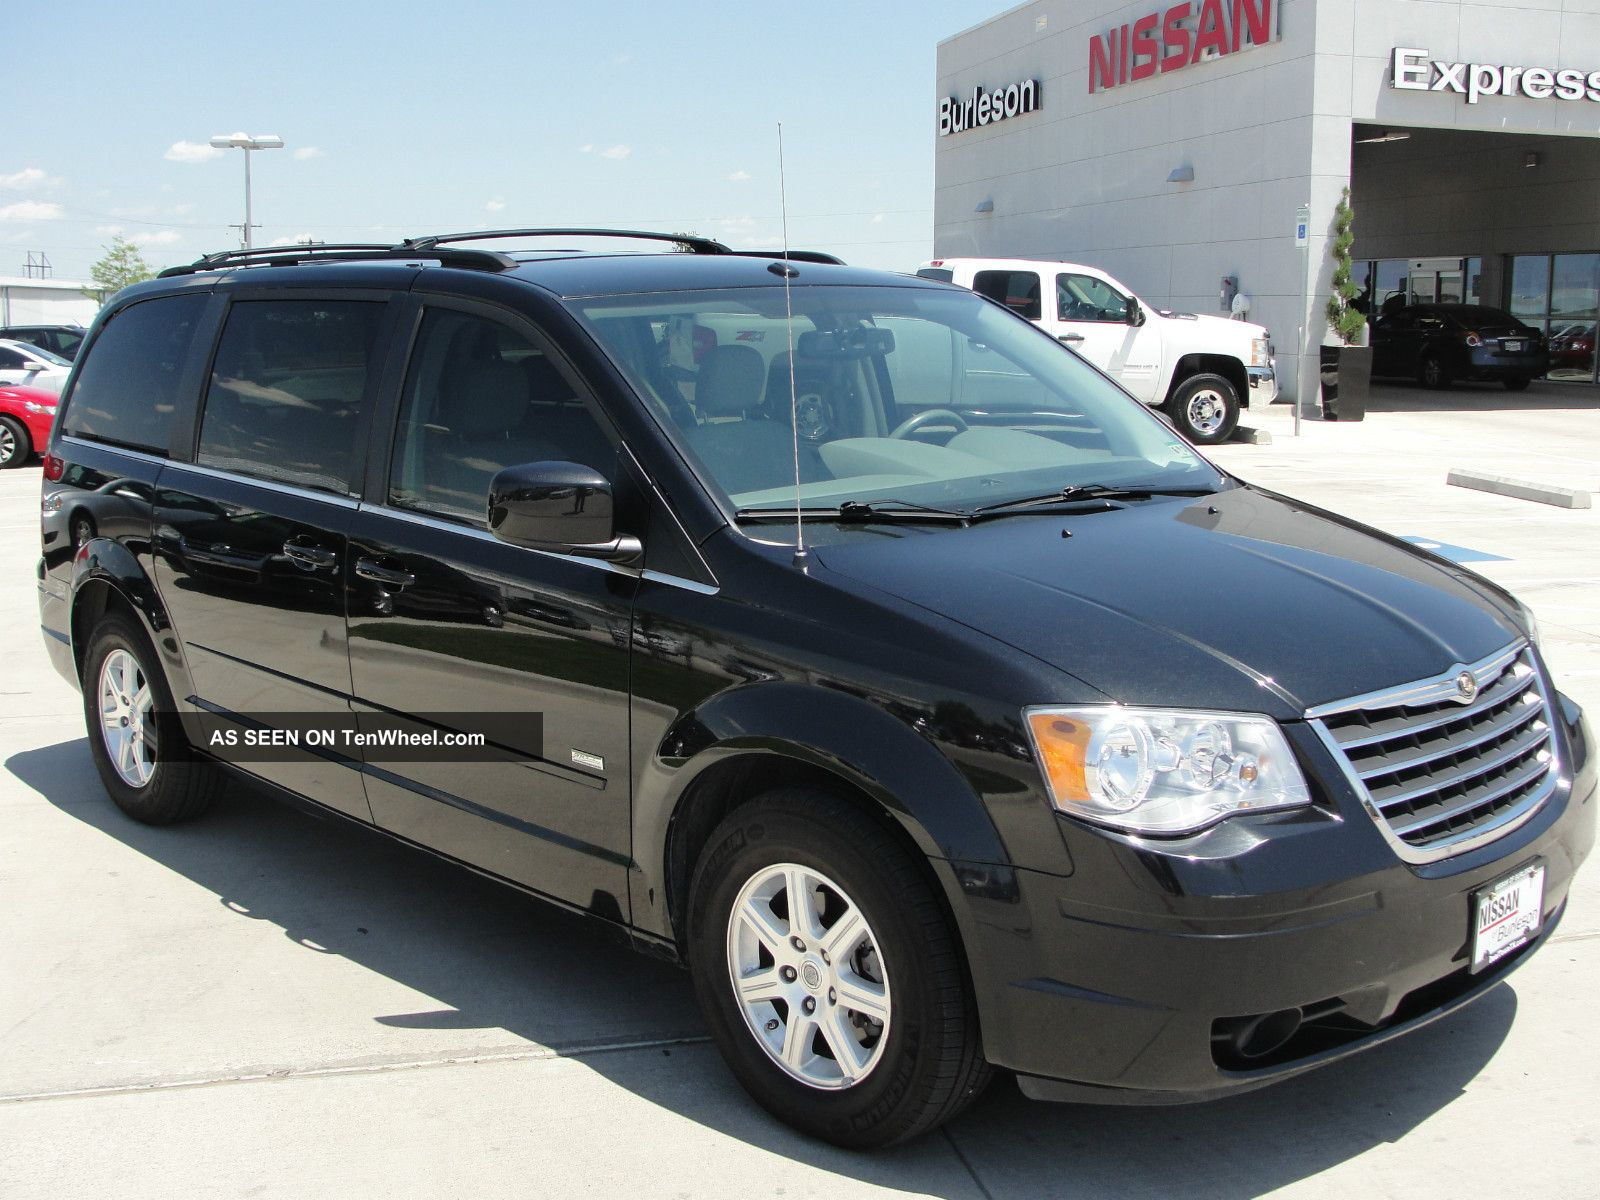 sale and for van chrysler town md image hills temple in country used